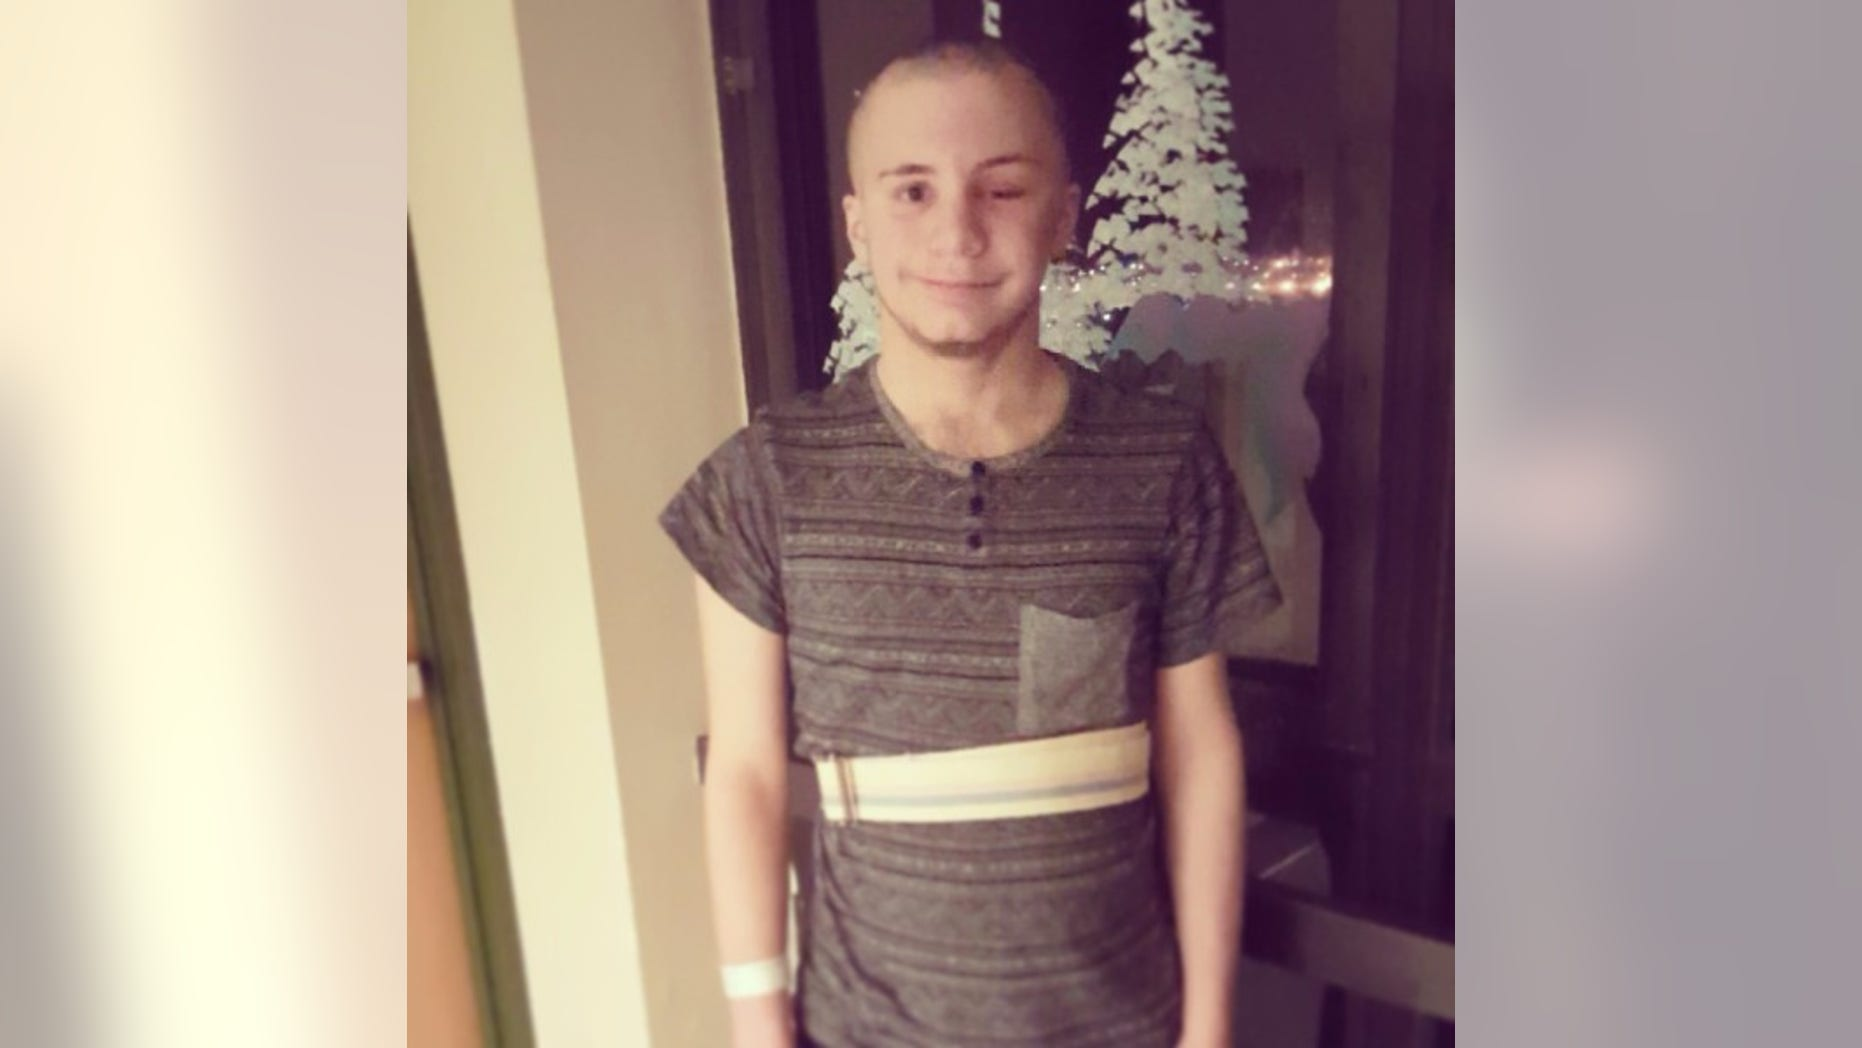 """Skylar Fish, of Renton, Washington, pictured here, had to be rushed to the hospital after suffering a brain bleed. He had been participating in """"The Duct Tape Challenge."""""""